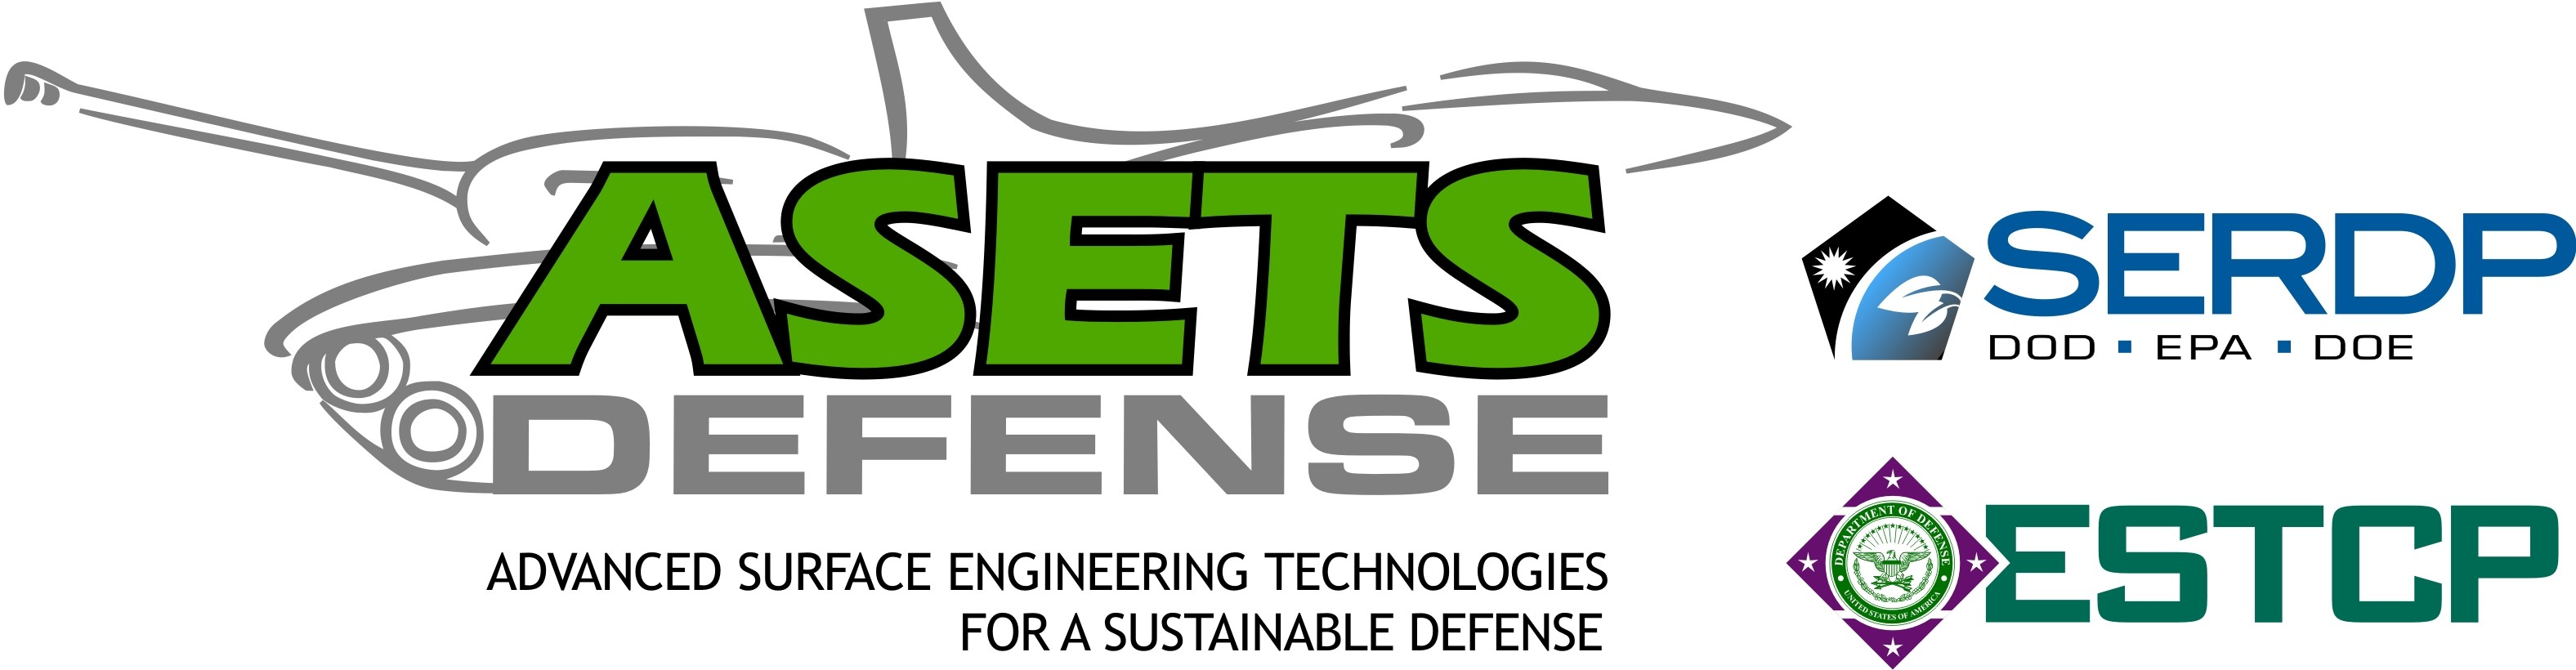 ASETSDefense Workshop 2016: Sustainable Surface Engineering for Aerospace and Defense Website